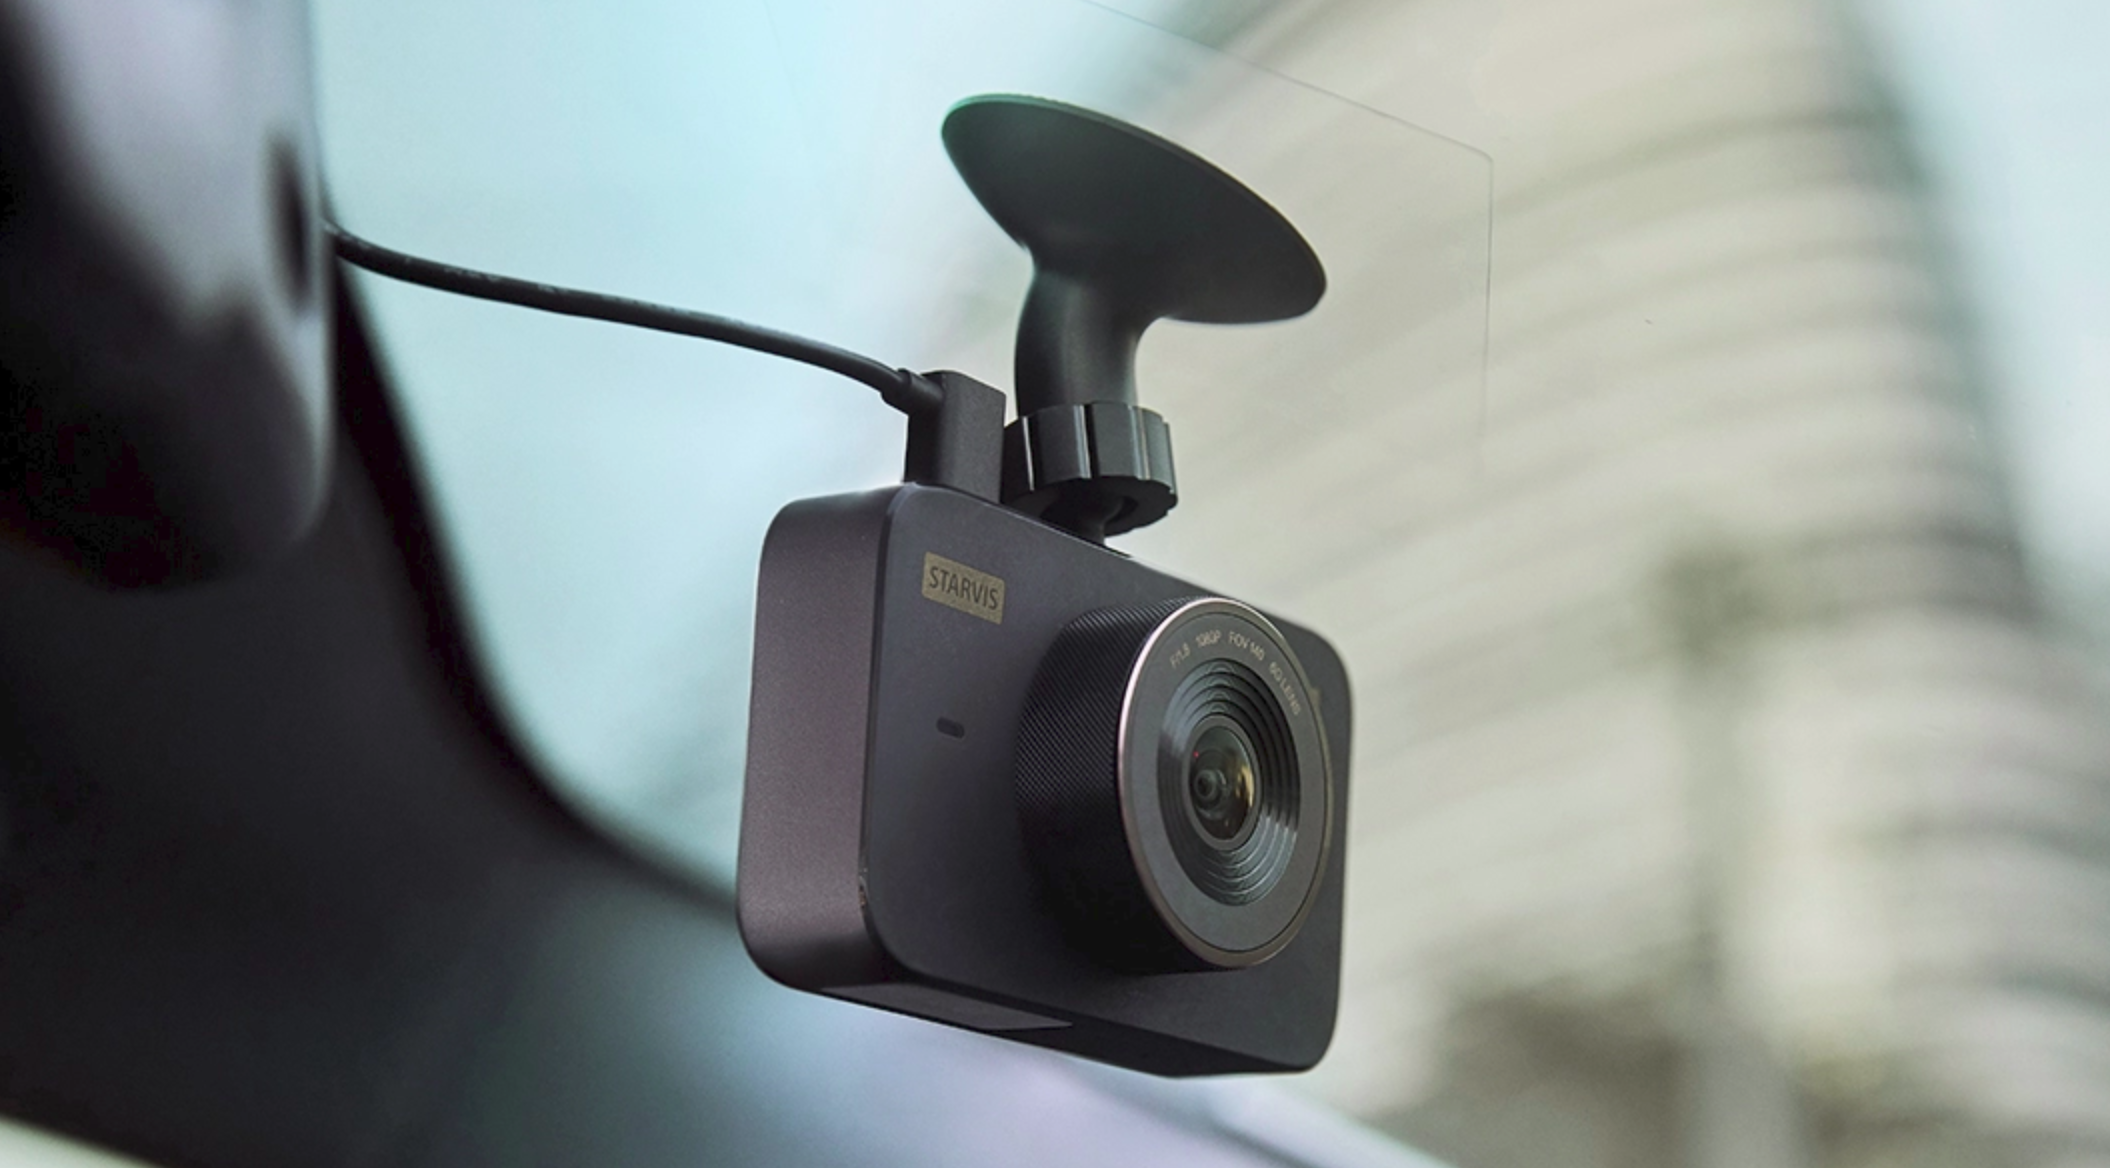 Redmi 1S, Dashcam, Xiaomi MiJia 4K, Xiaomi, , Digital Video Recorders, Car, Camera, Video Cameras, Xiaomi MiJia, xiaomi mijia car dvr 1s, Camera, Cameras & optics, Video camera, Automotive mirror, Rear-view mirror